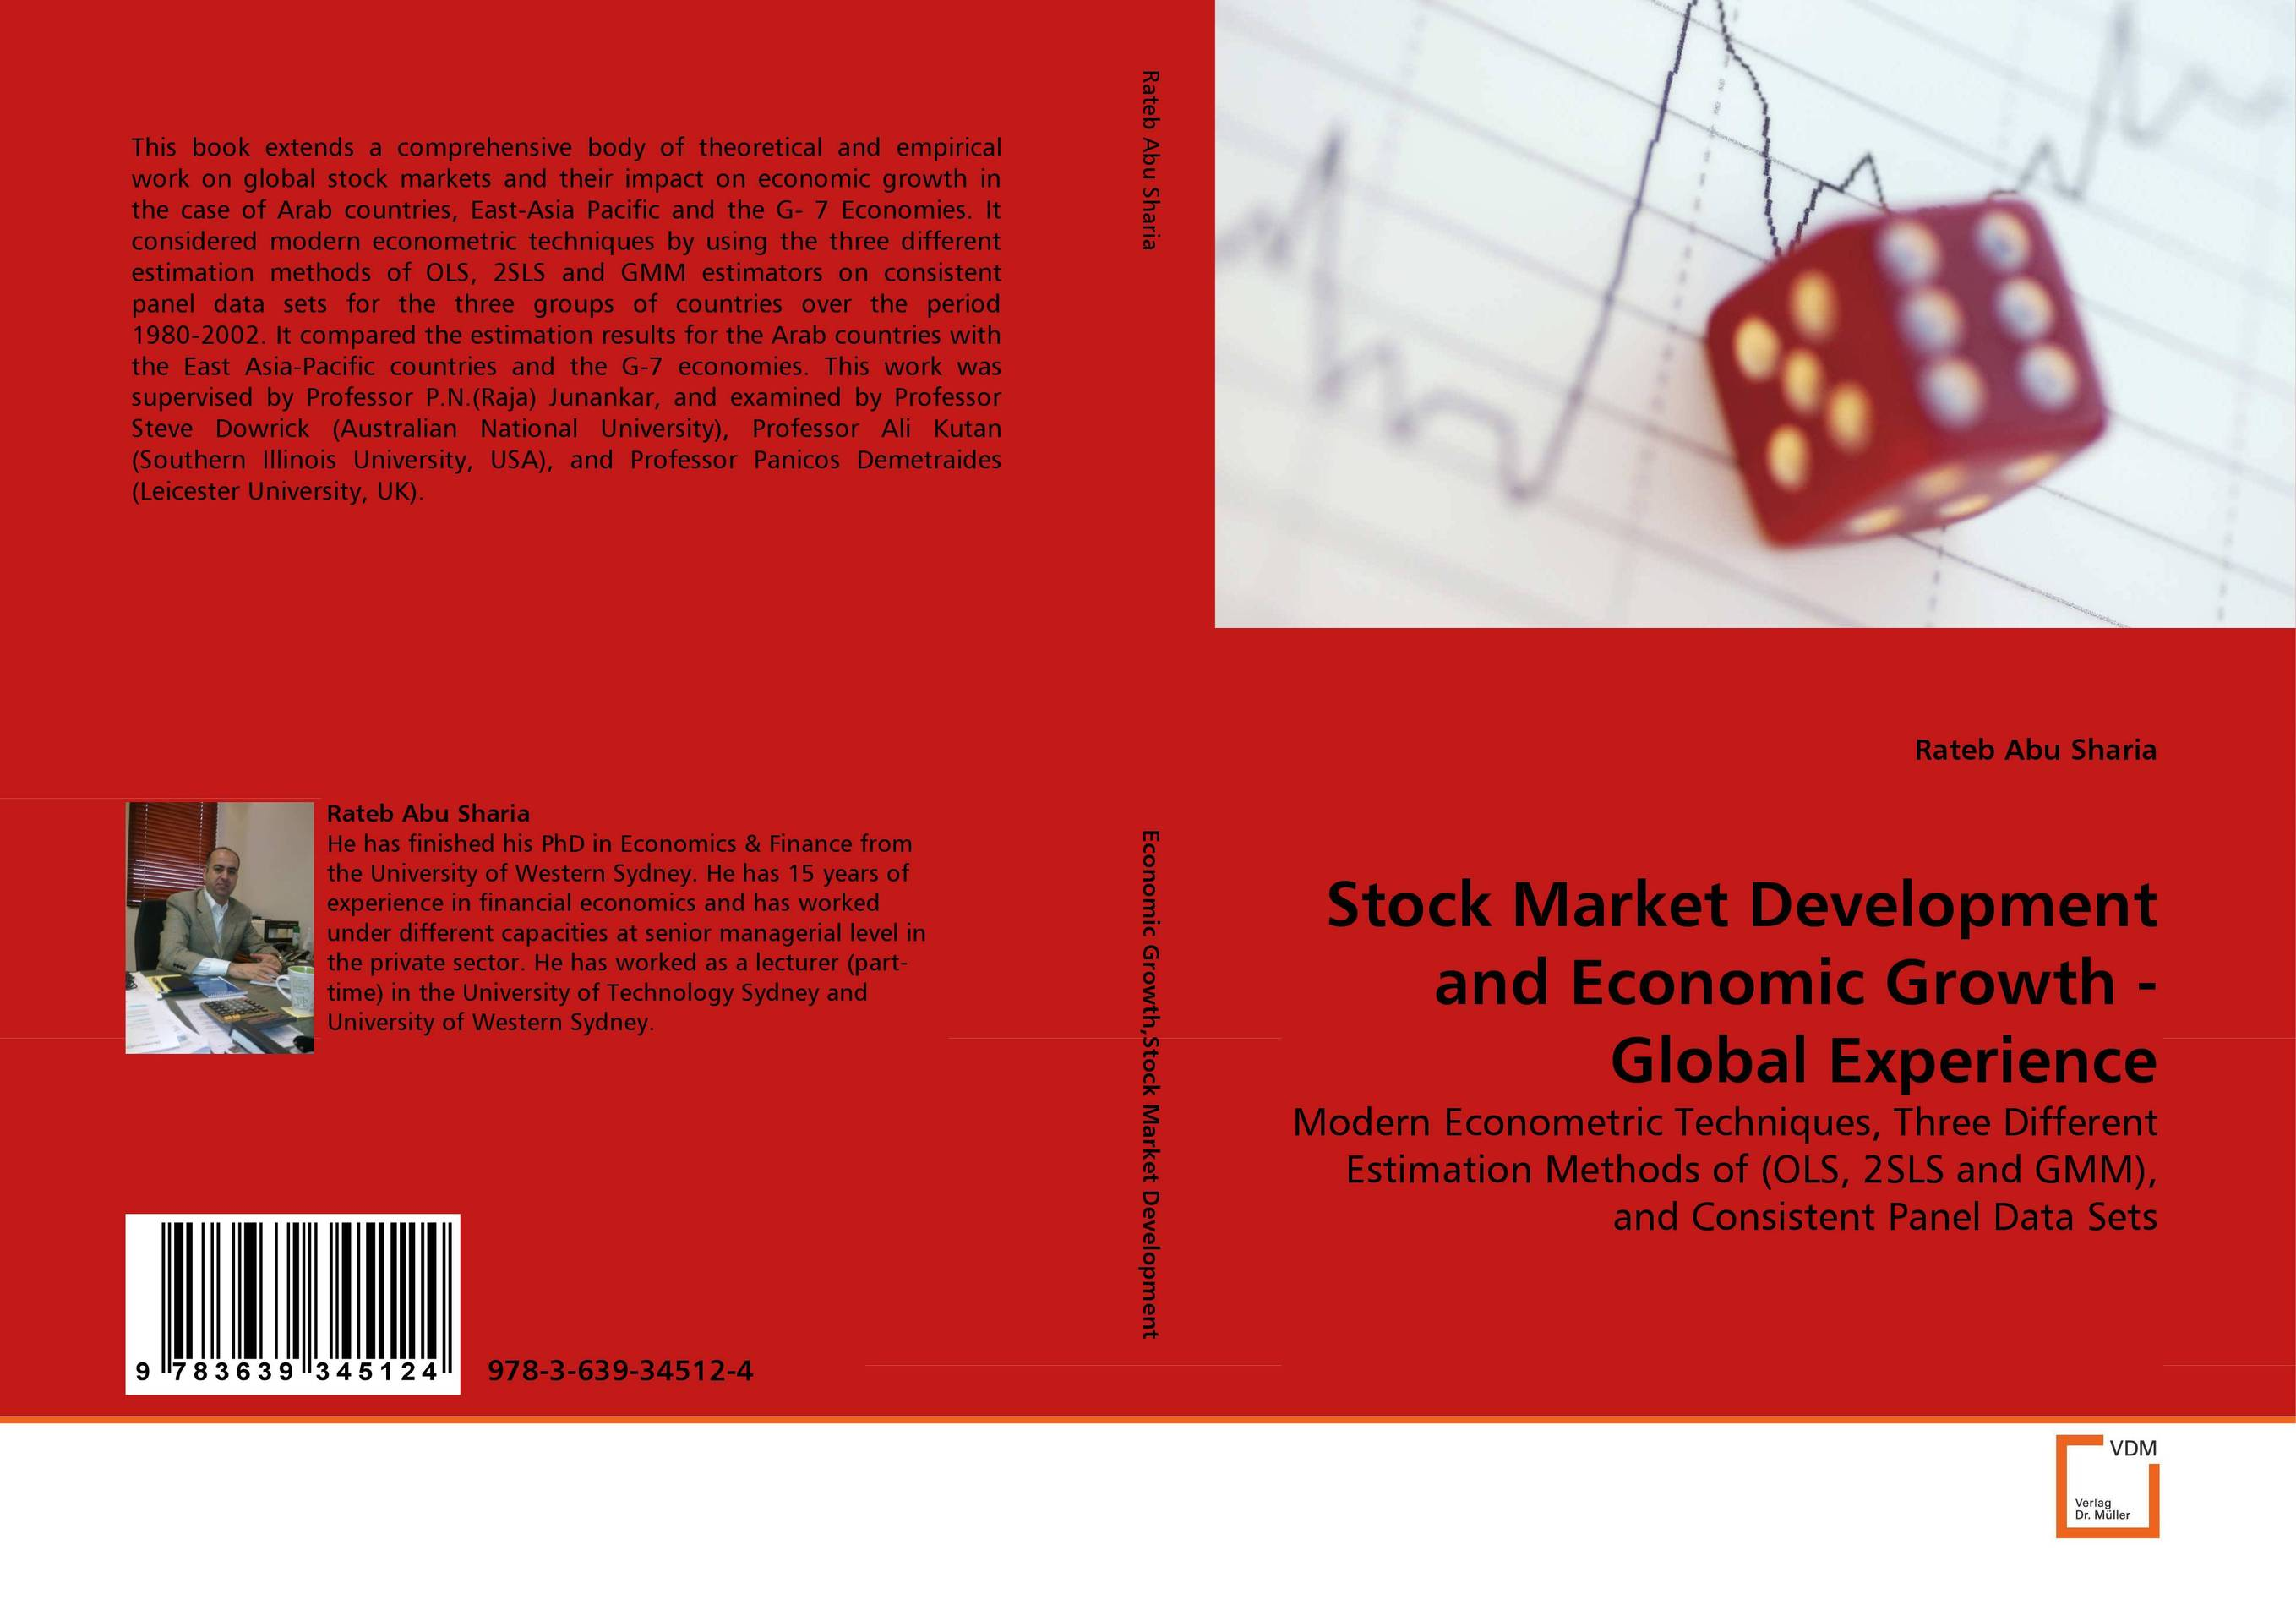 Stock Market Development and Economic Growth - Global Experience